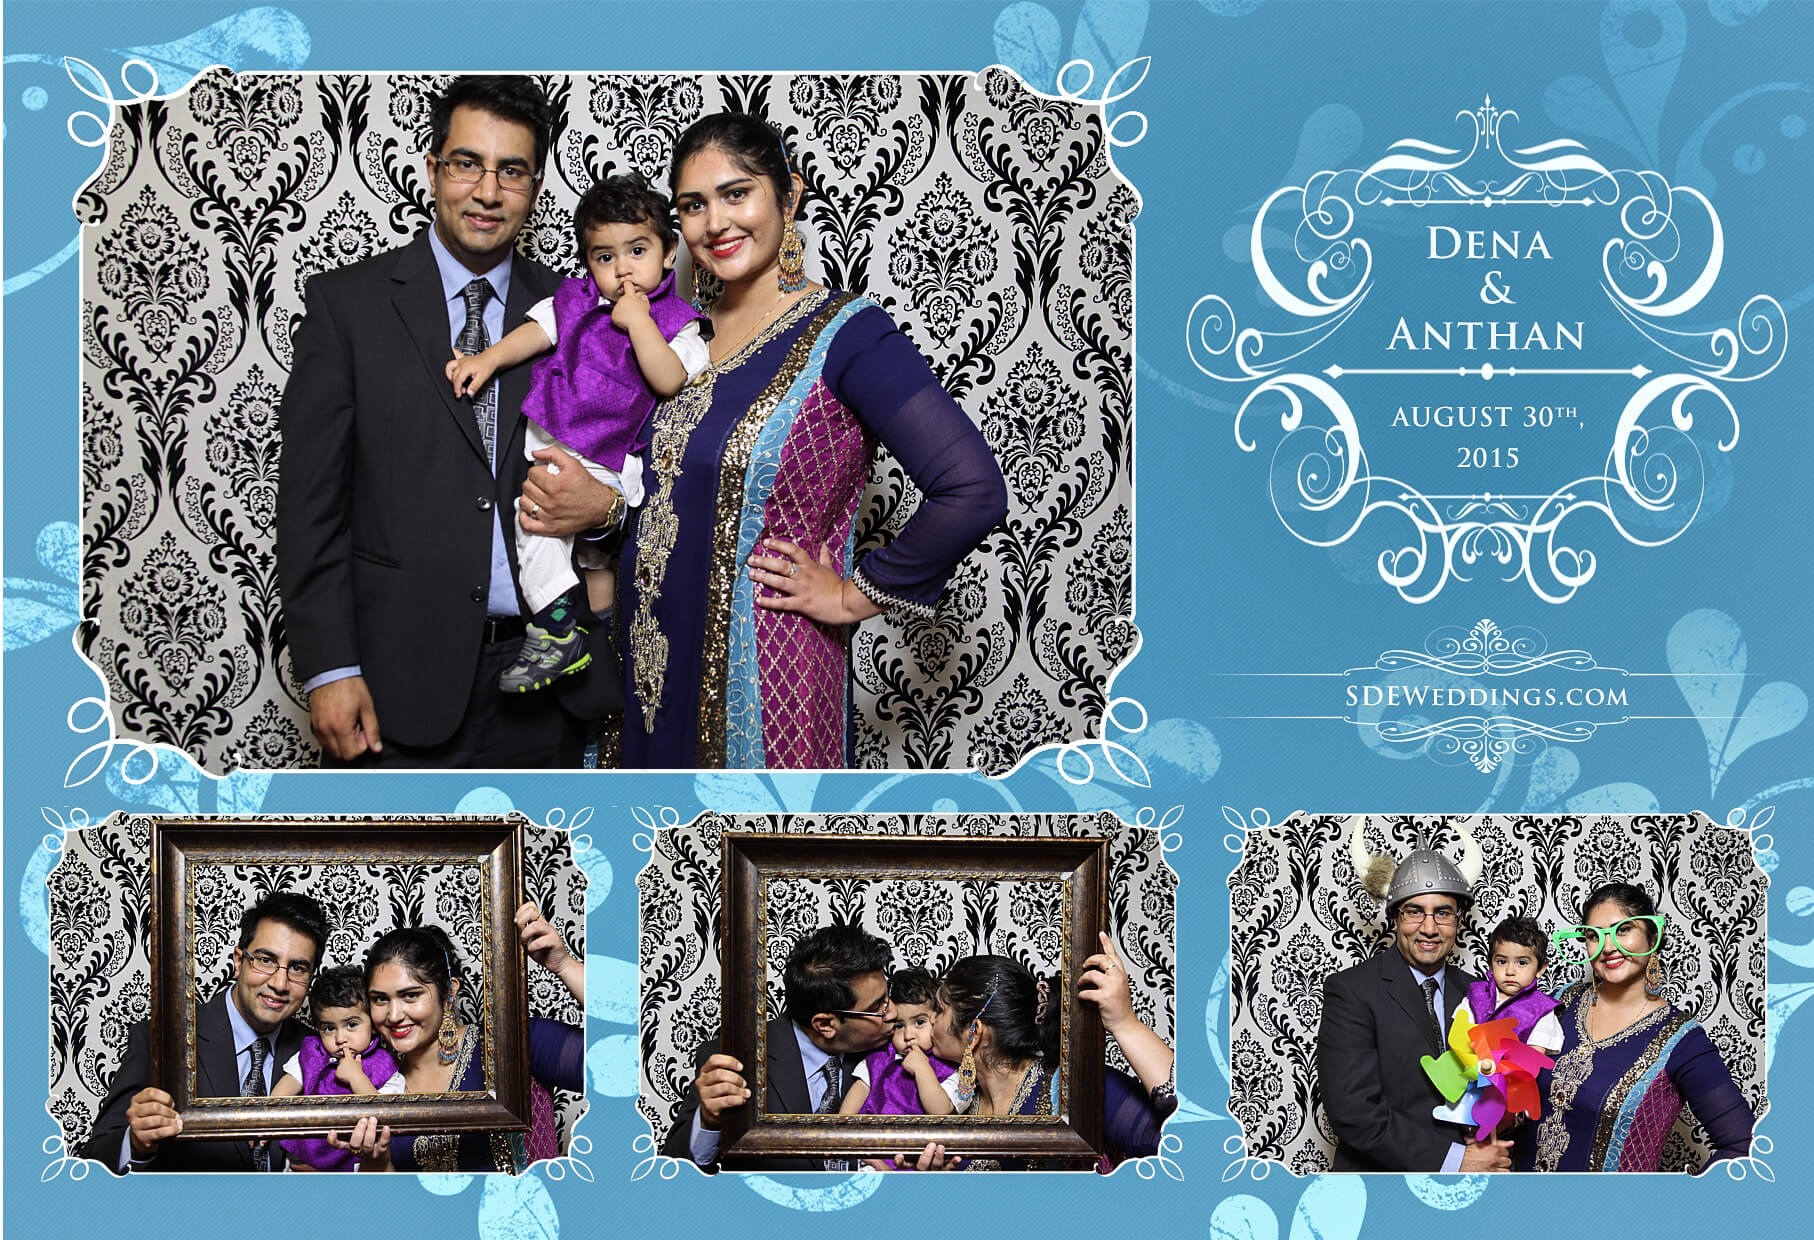 Toronto Photo Booth Rental at Peter and Paul Banquet Hall 6